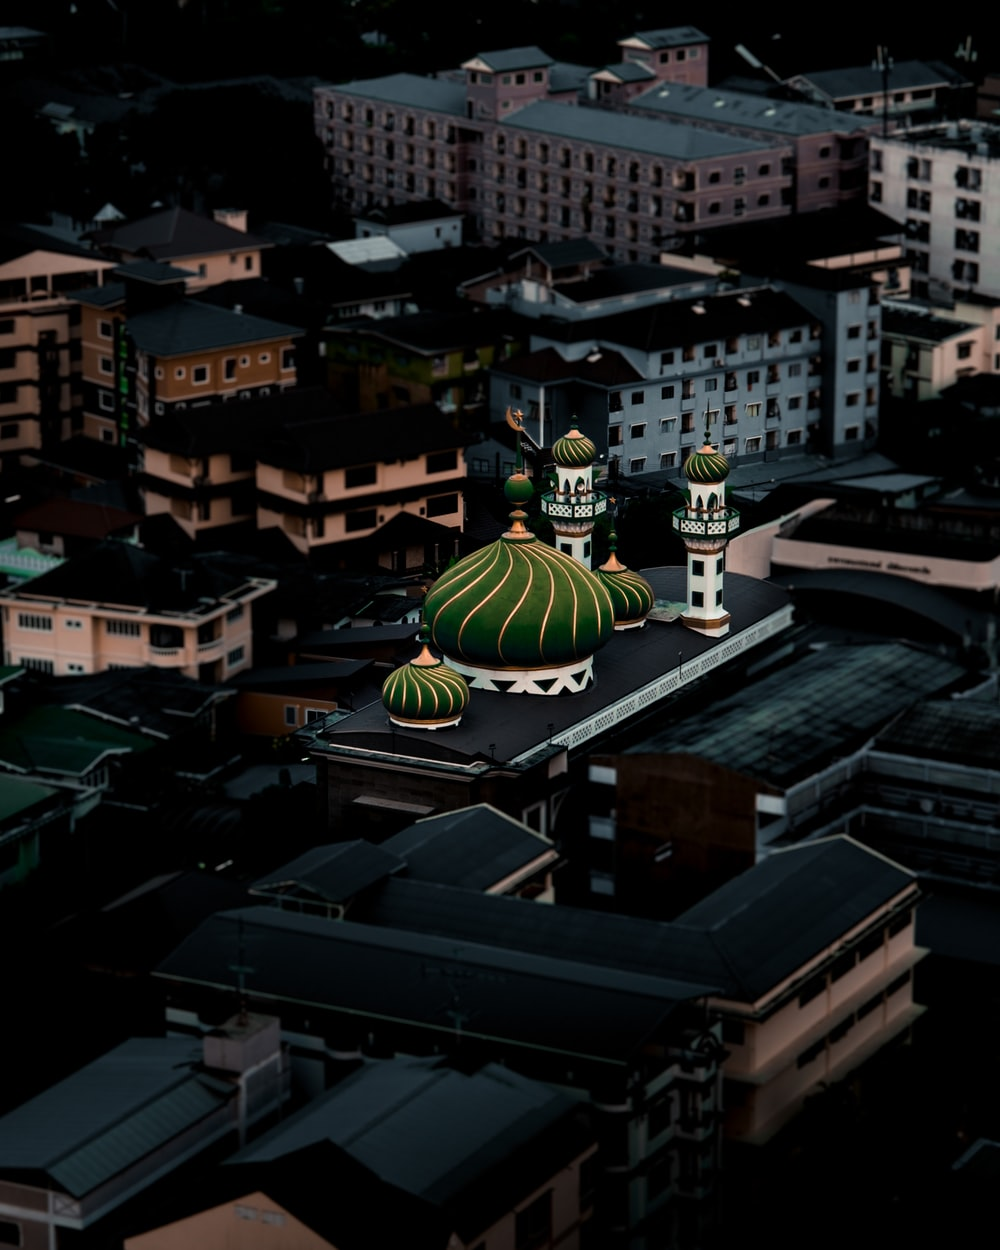 green and yellow dome building